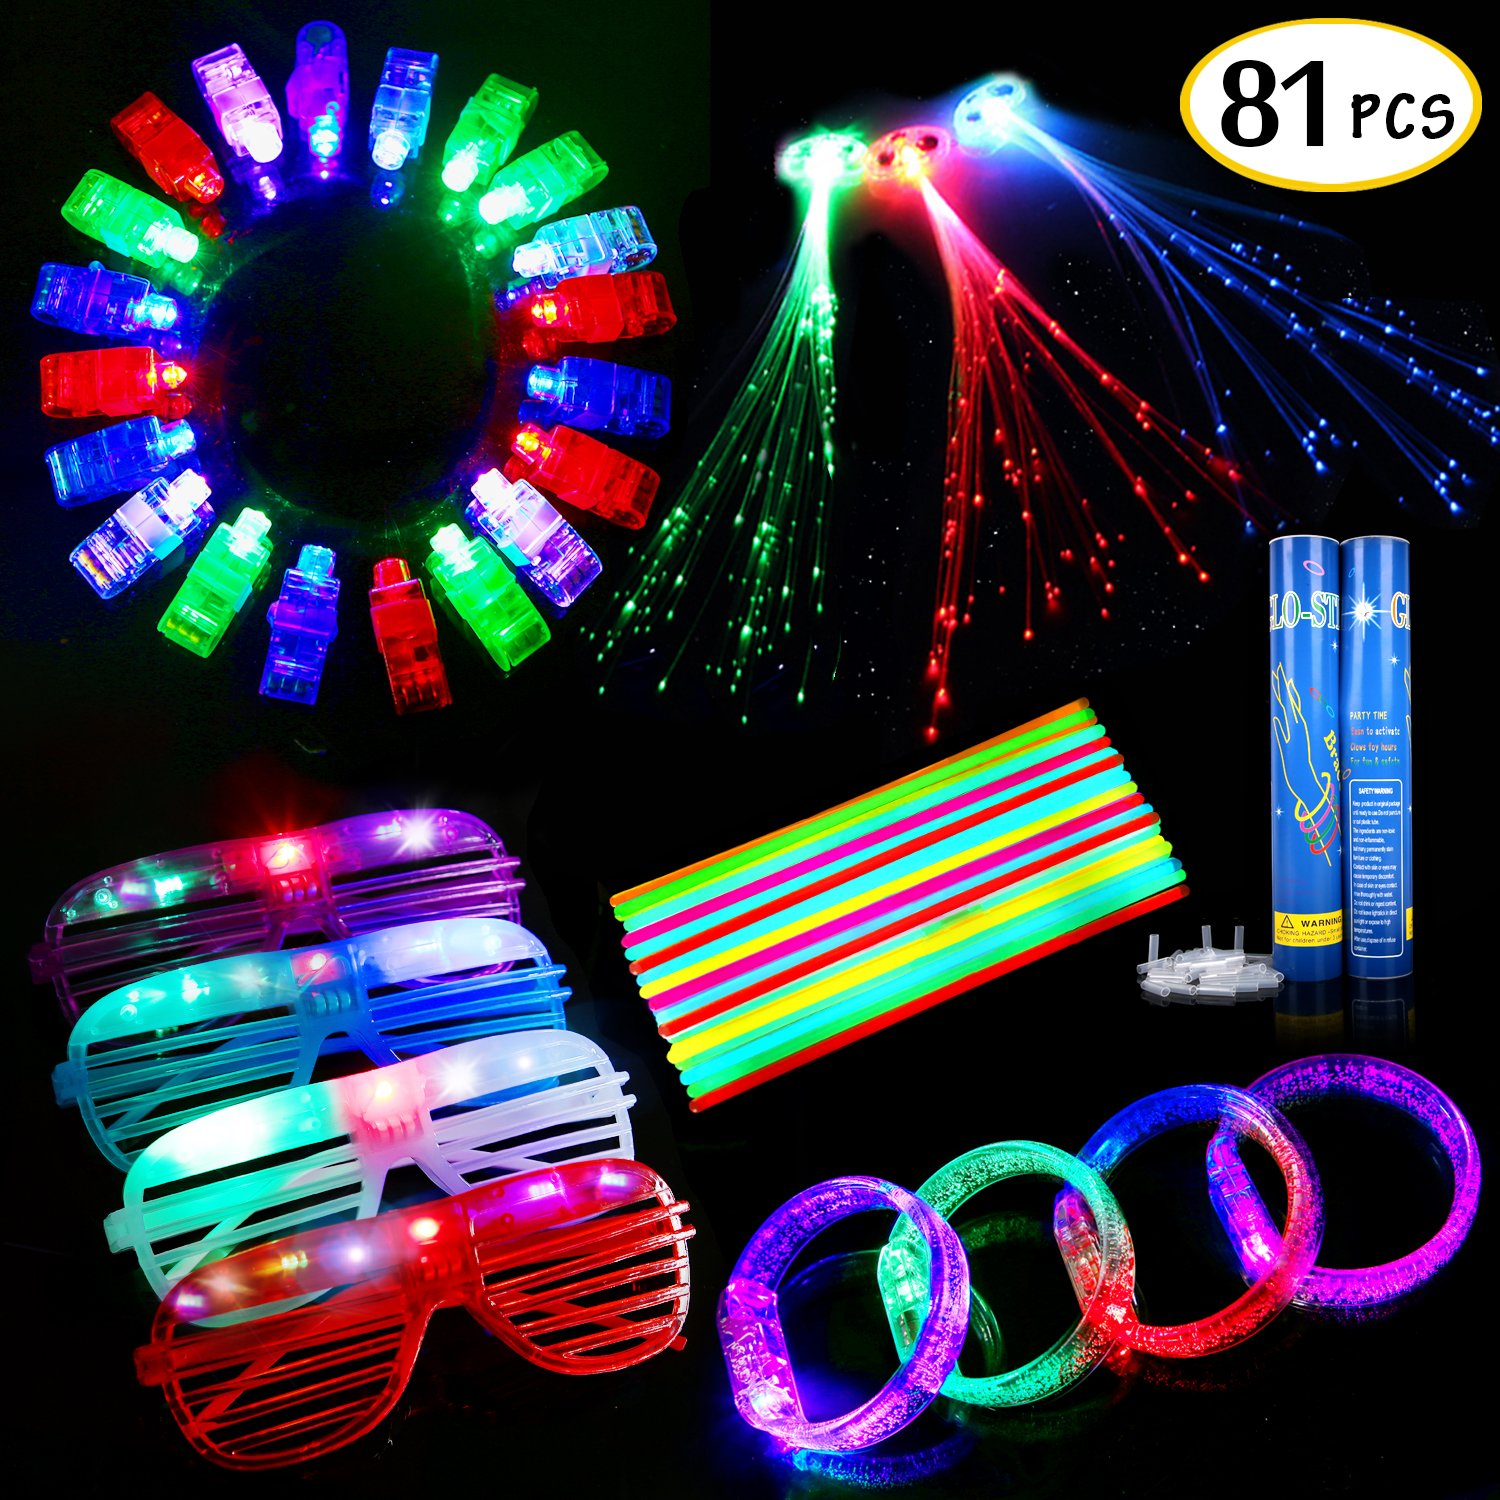 Party Favors for Kids Adults, Glow in The Dark Party Supplies, 81PCS Led Light Up Toys, 50 Glow Sticks, 20 Finger Lights, 4 Led Glasses, 4 Light Up Bracelets, 3 Flashing Lights Hair by SCIONE